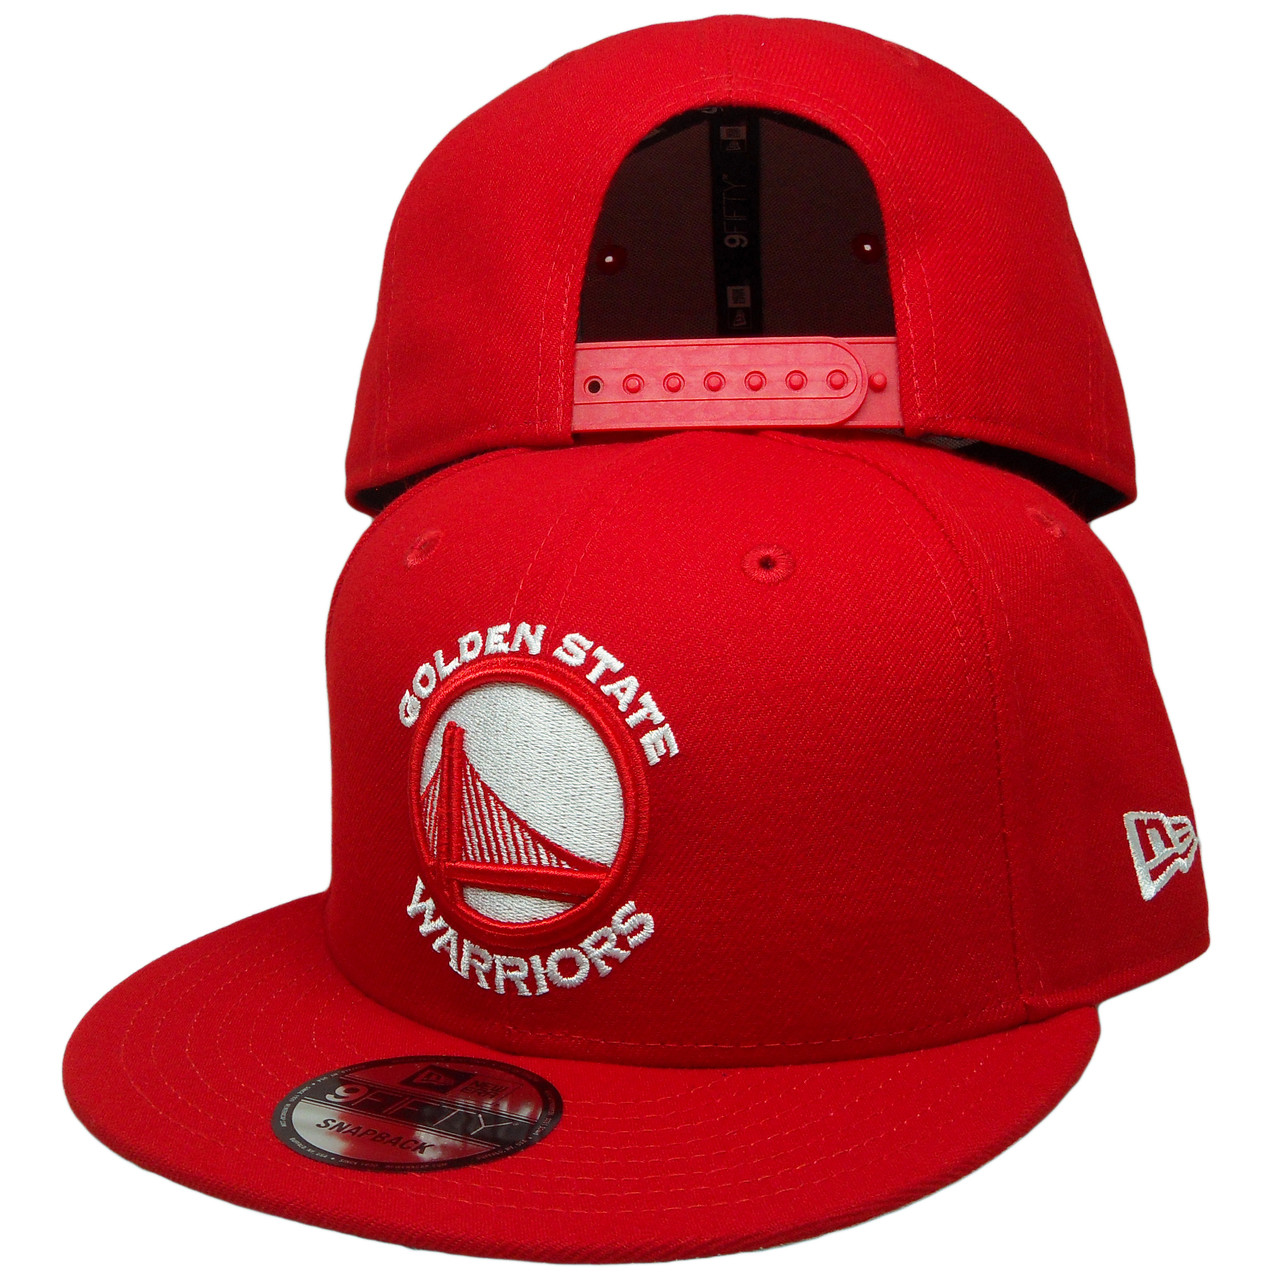 brand new 40f61 aa933 Golden State Warriors New Era Custom 9Fifty Snapback - Red, White -  ECapsUnlimited.com